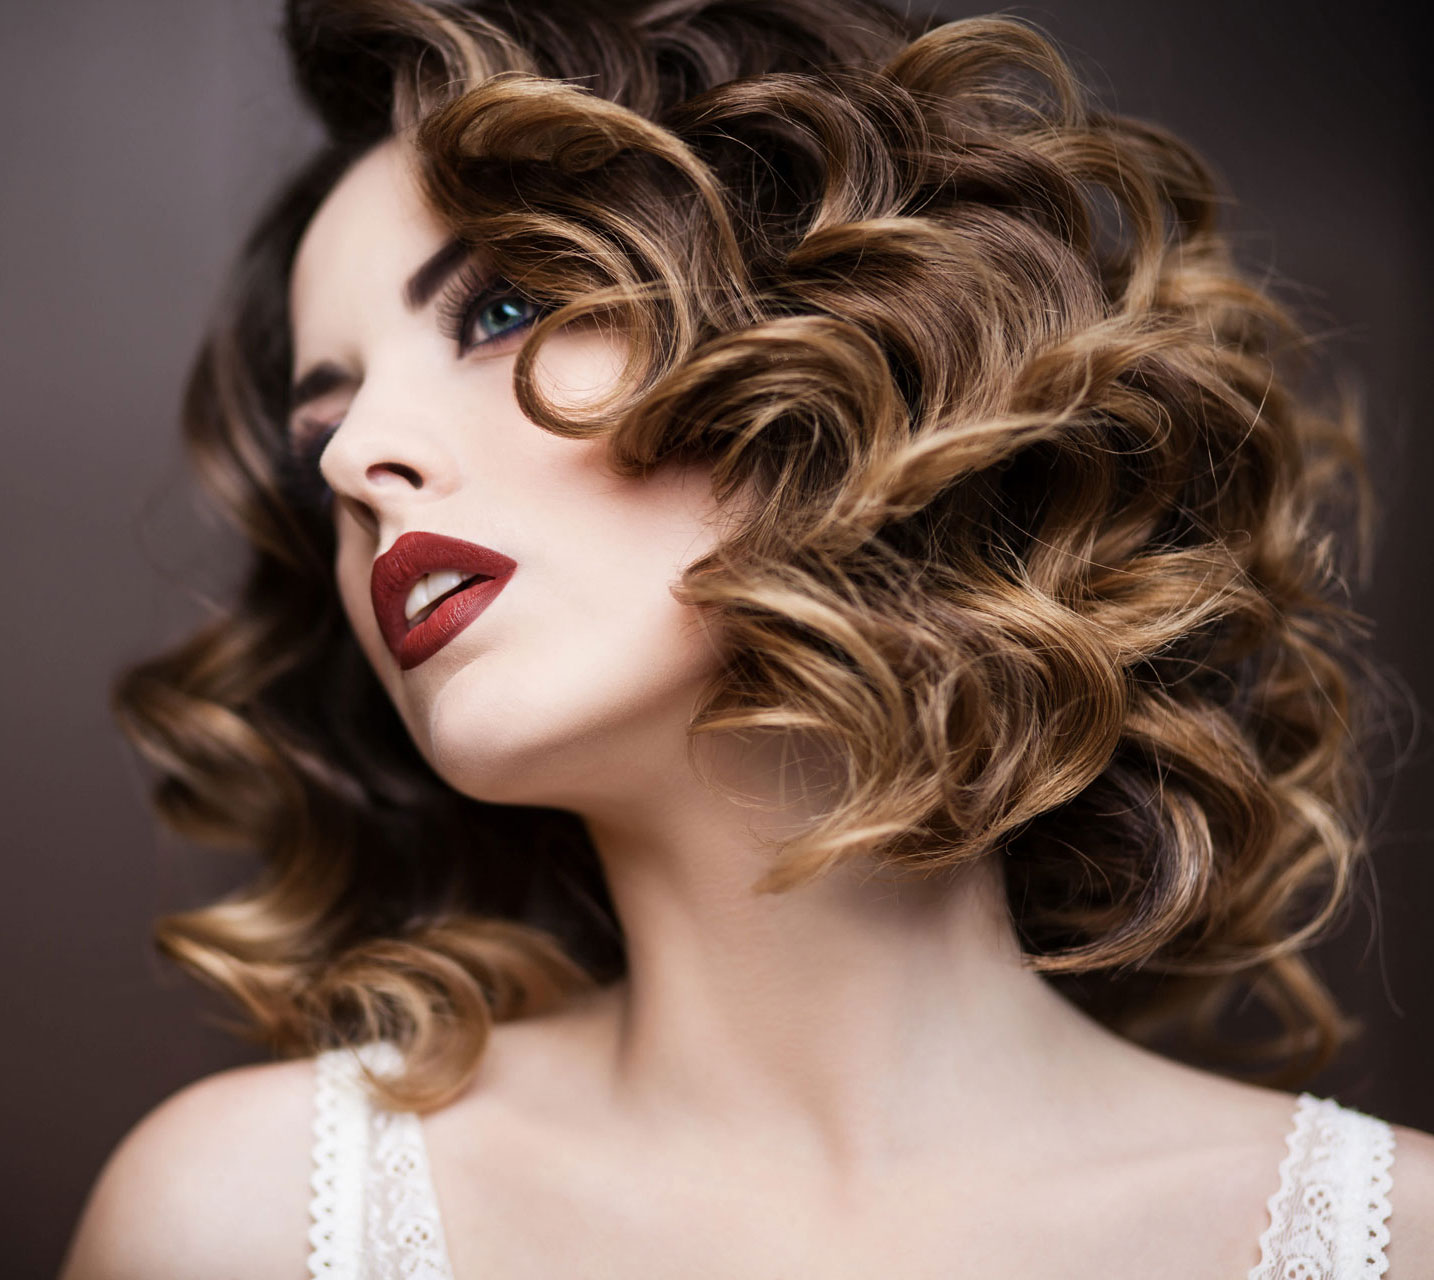 Best Haircut & Style Salons in Orlando, Fl